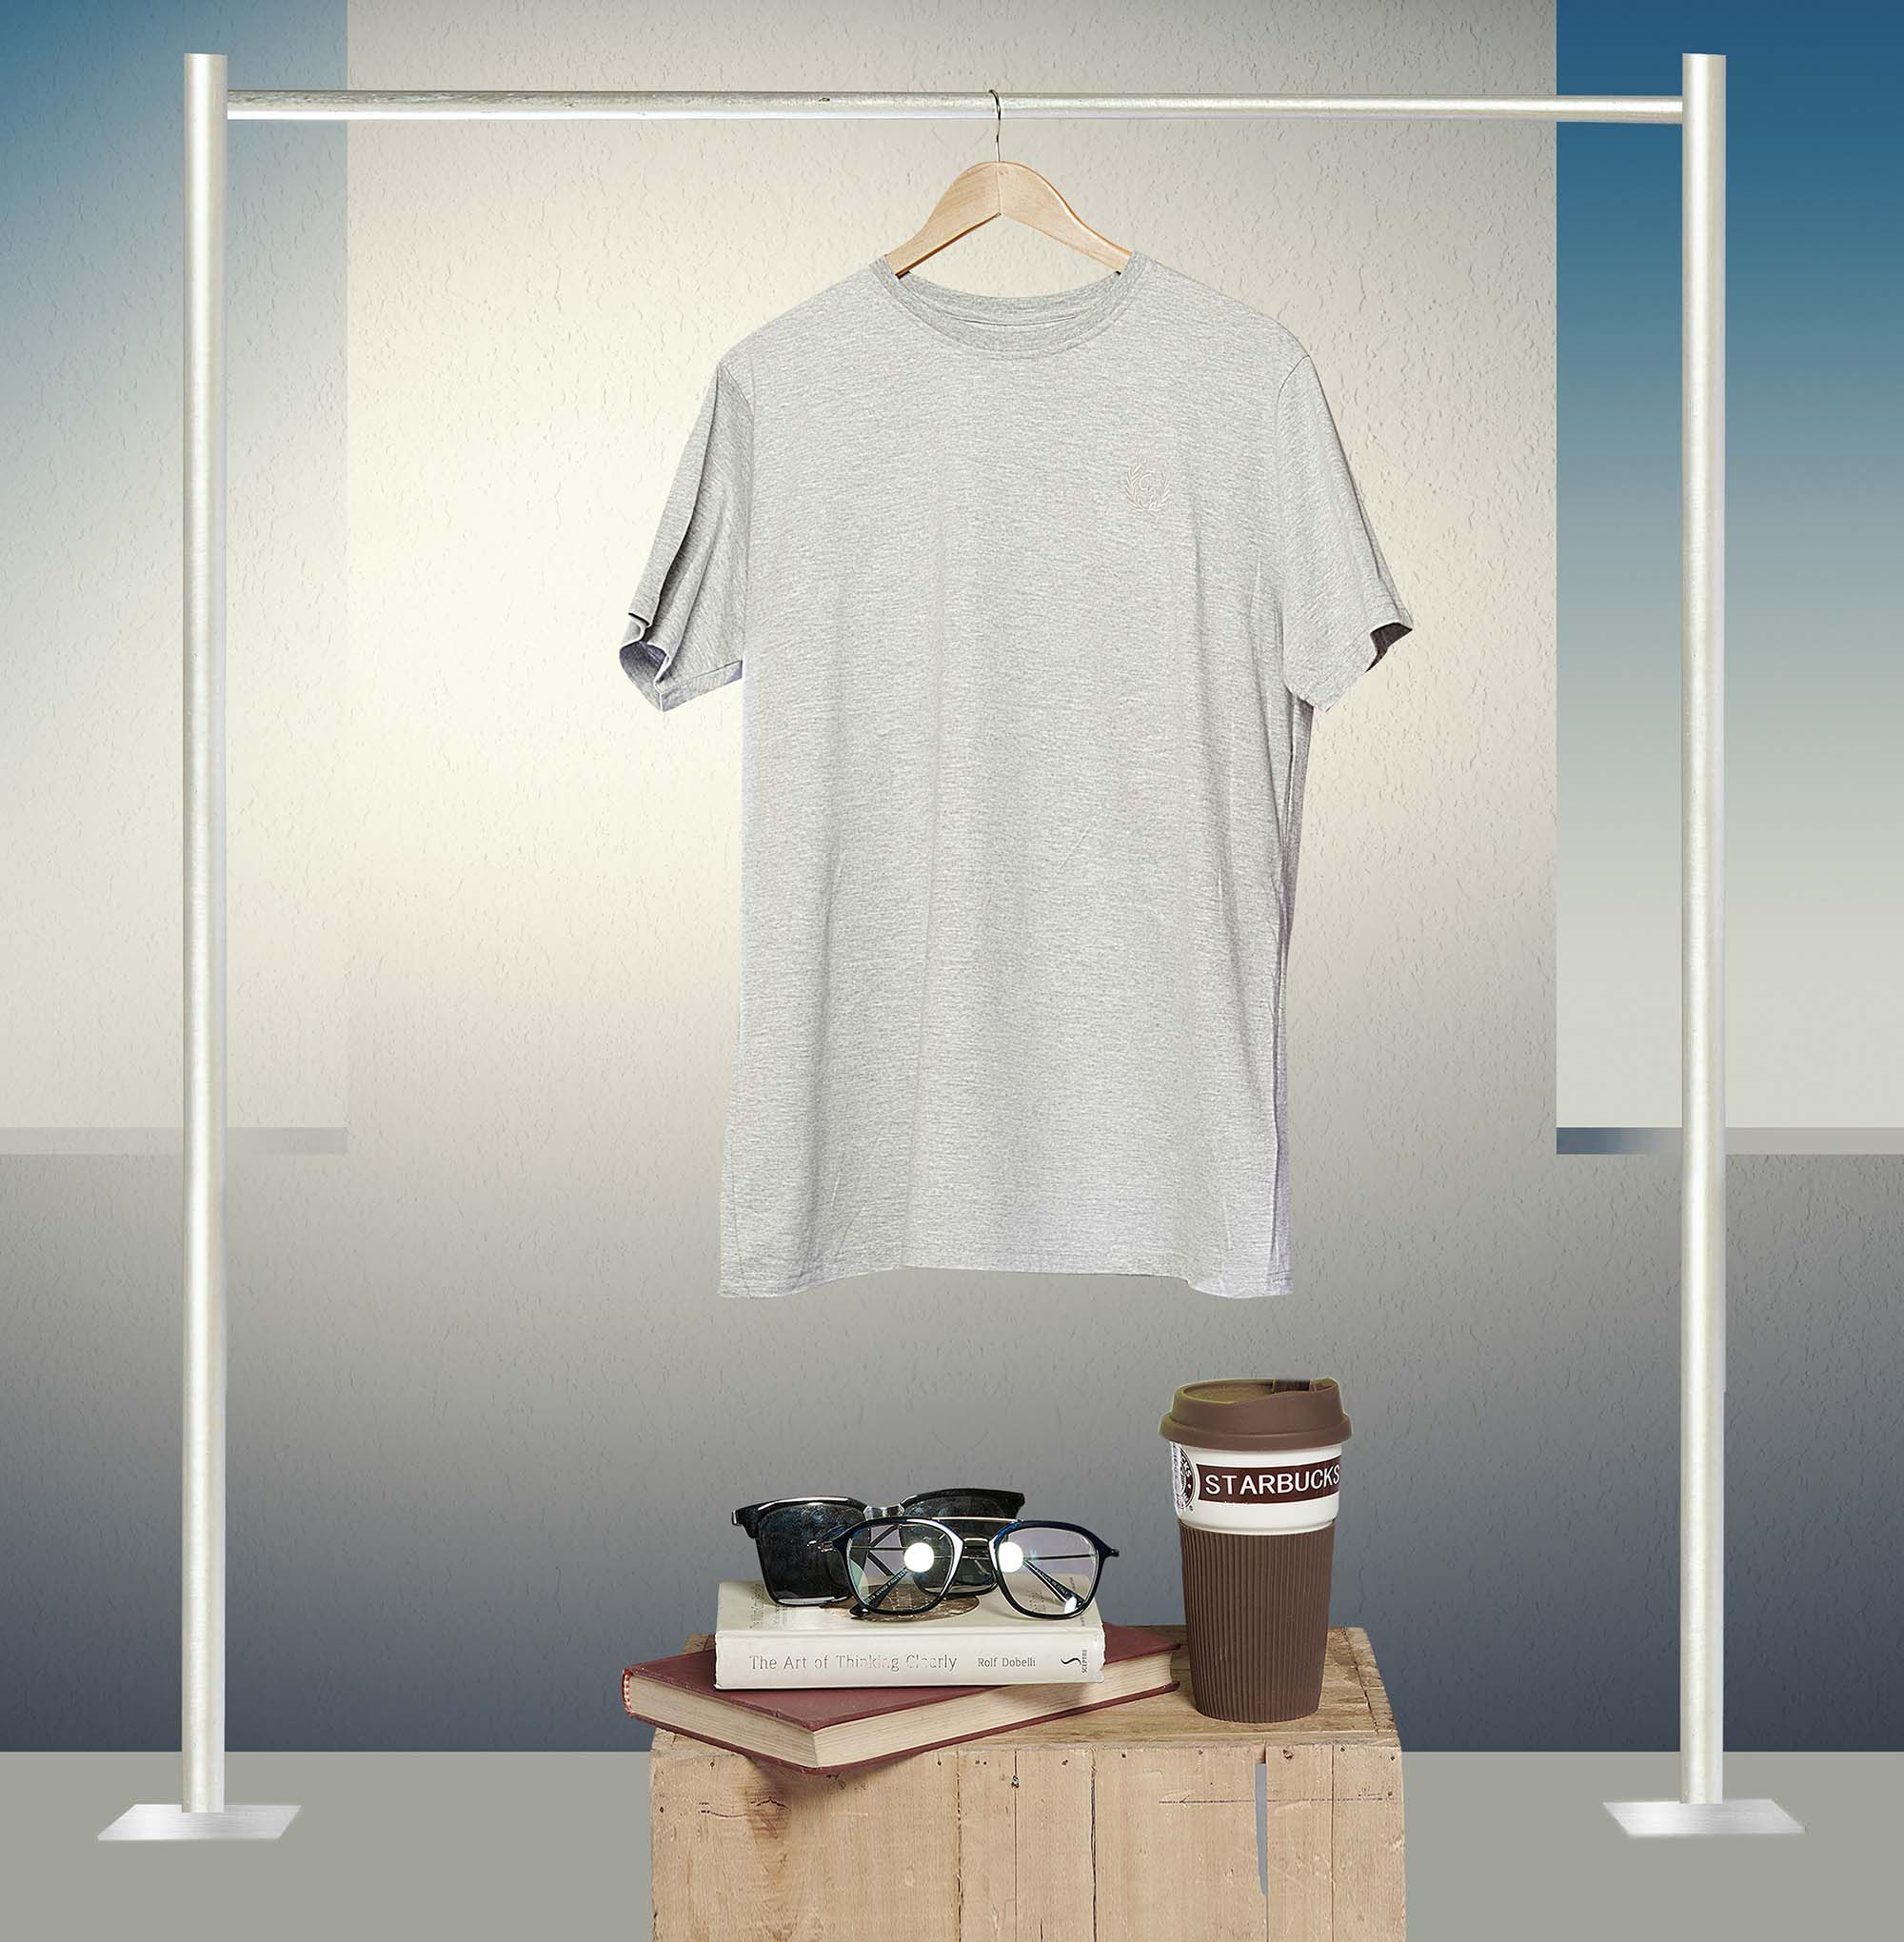 Download Hanging T Shirt Mockup Model Pakaian Pakaian Kaos